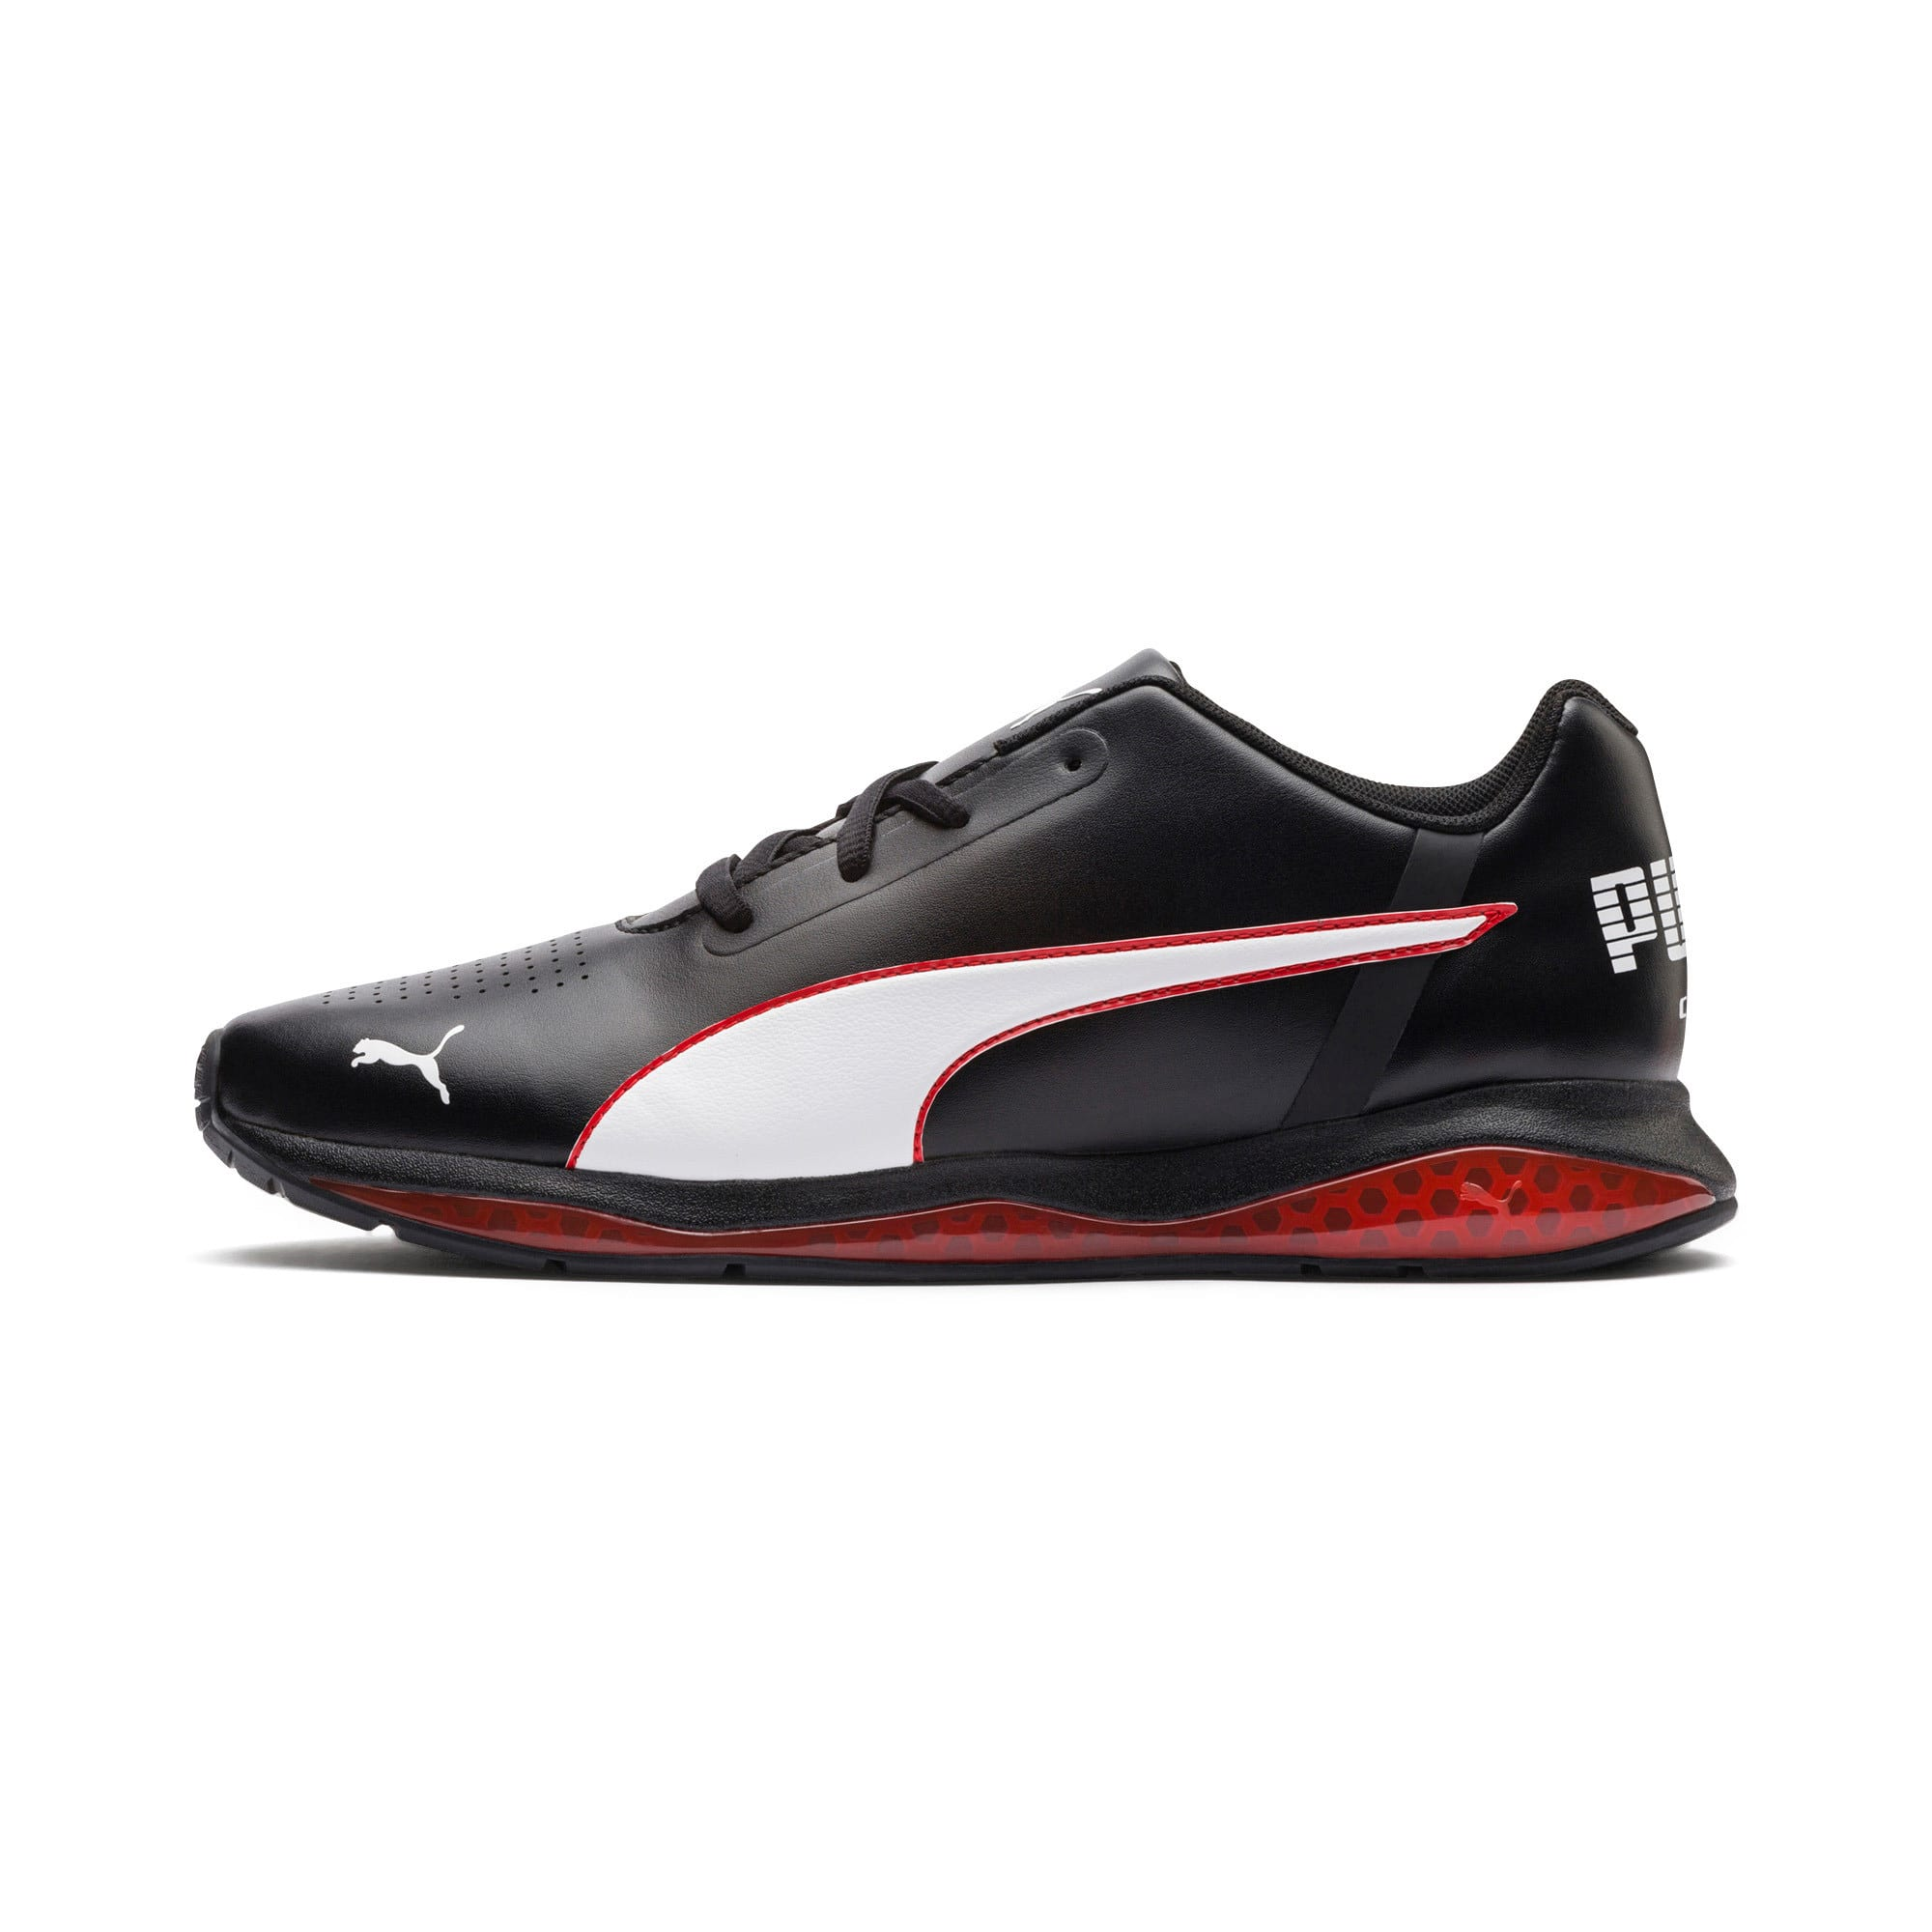 Thumbnail 1 of CELL Ultimate SL Running Shoes, Pma Blk-Pma Wht-Hgh Rsk Rd, medium